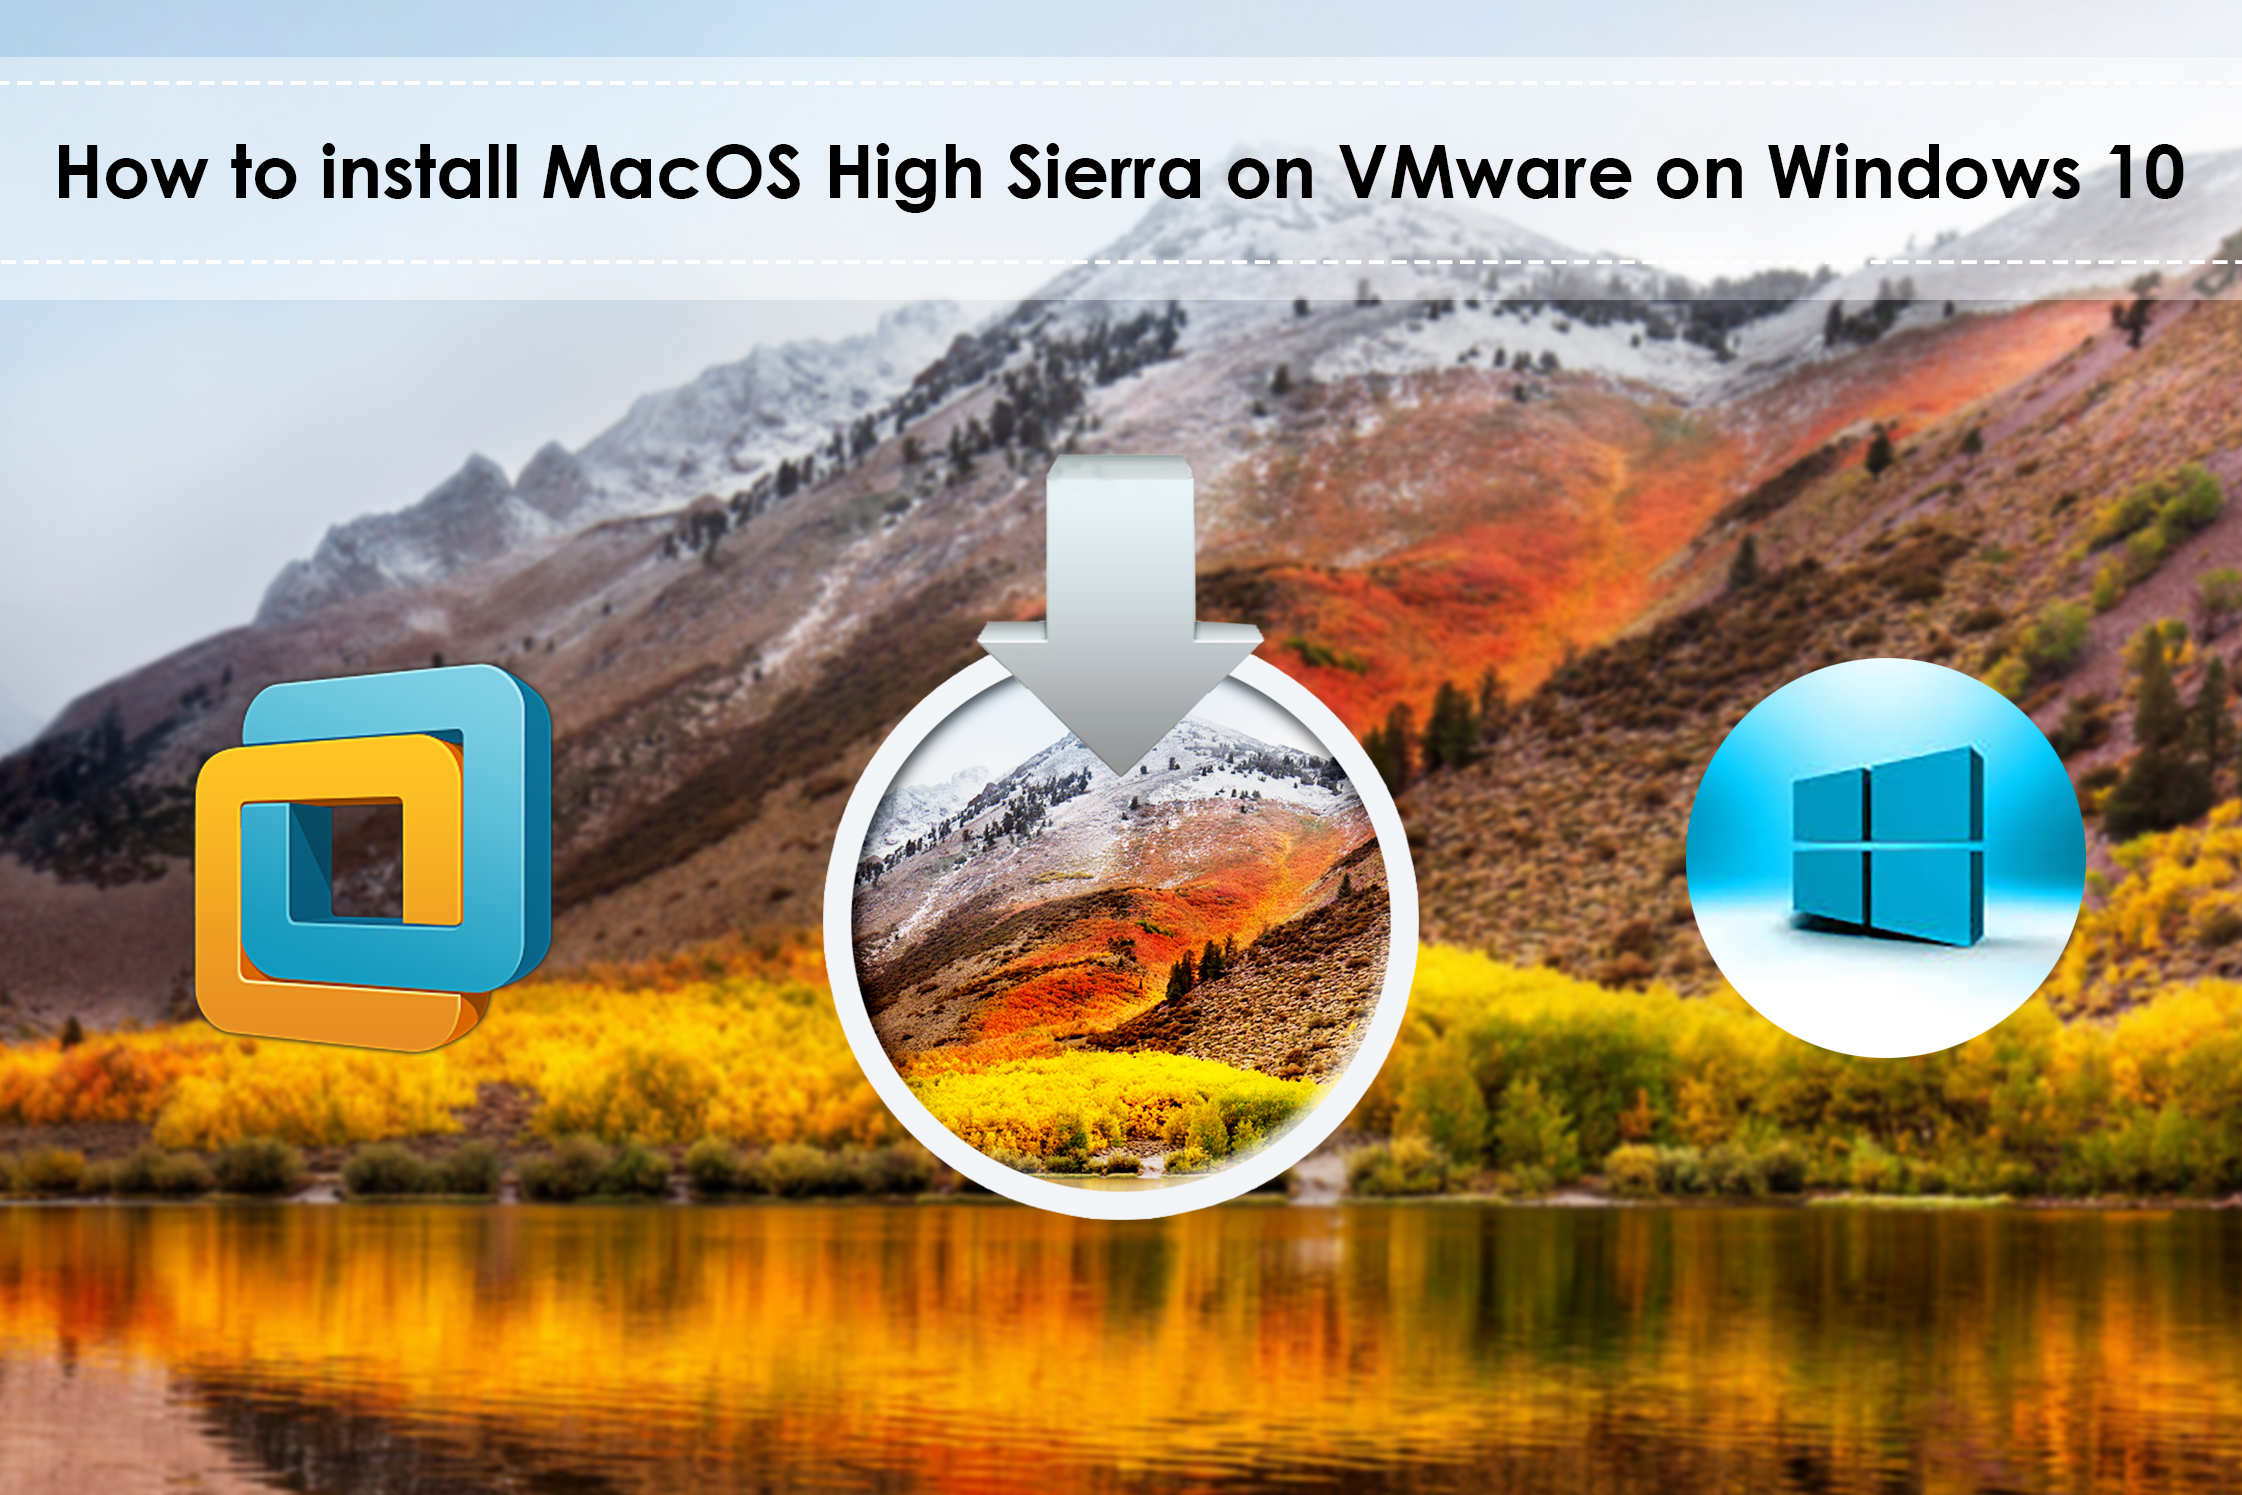 vmware download for mac os sierra